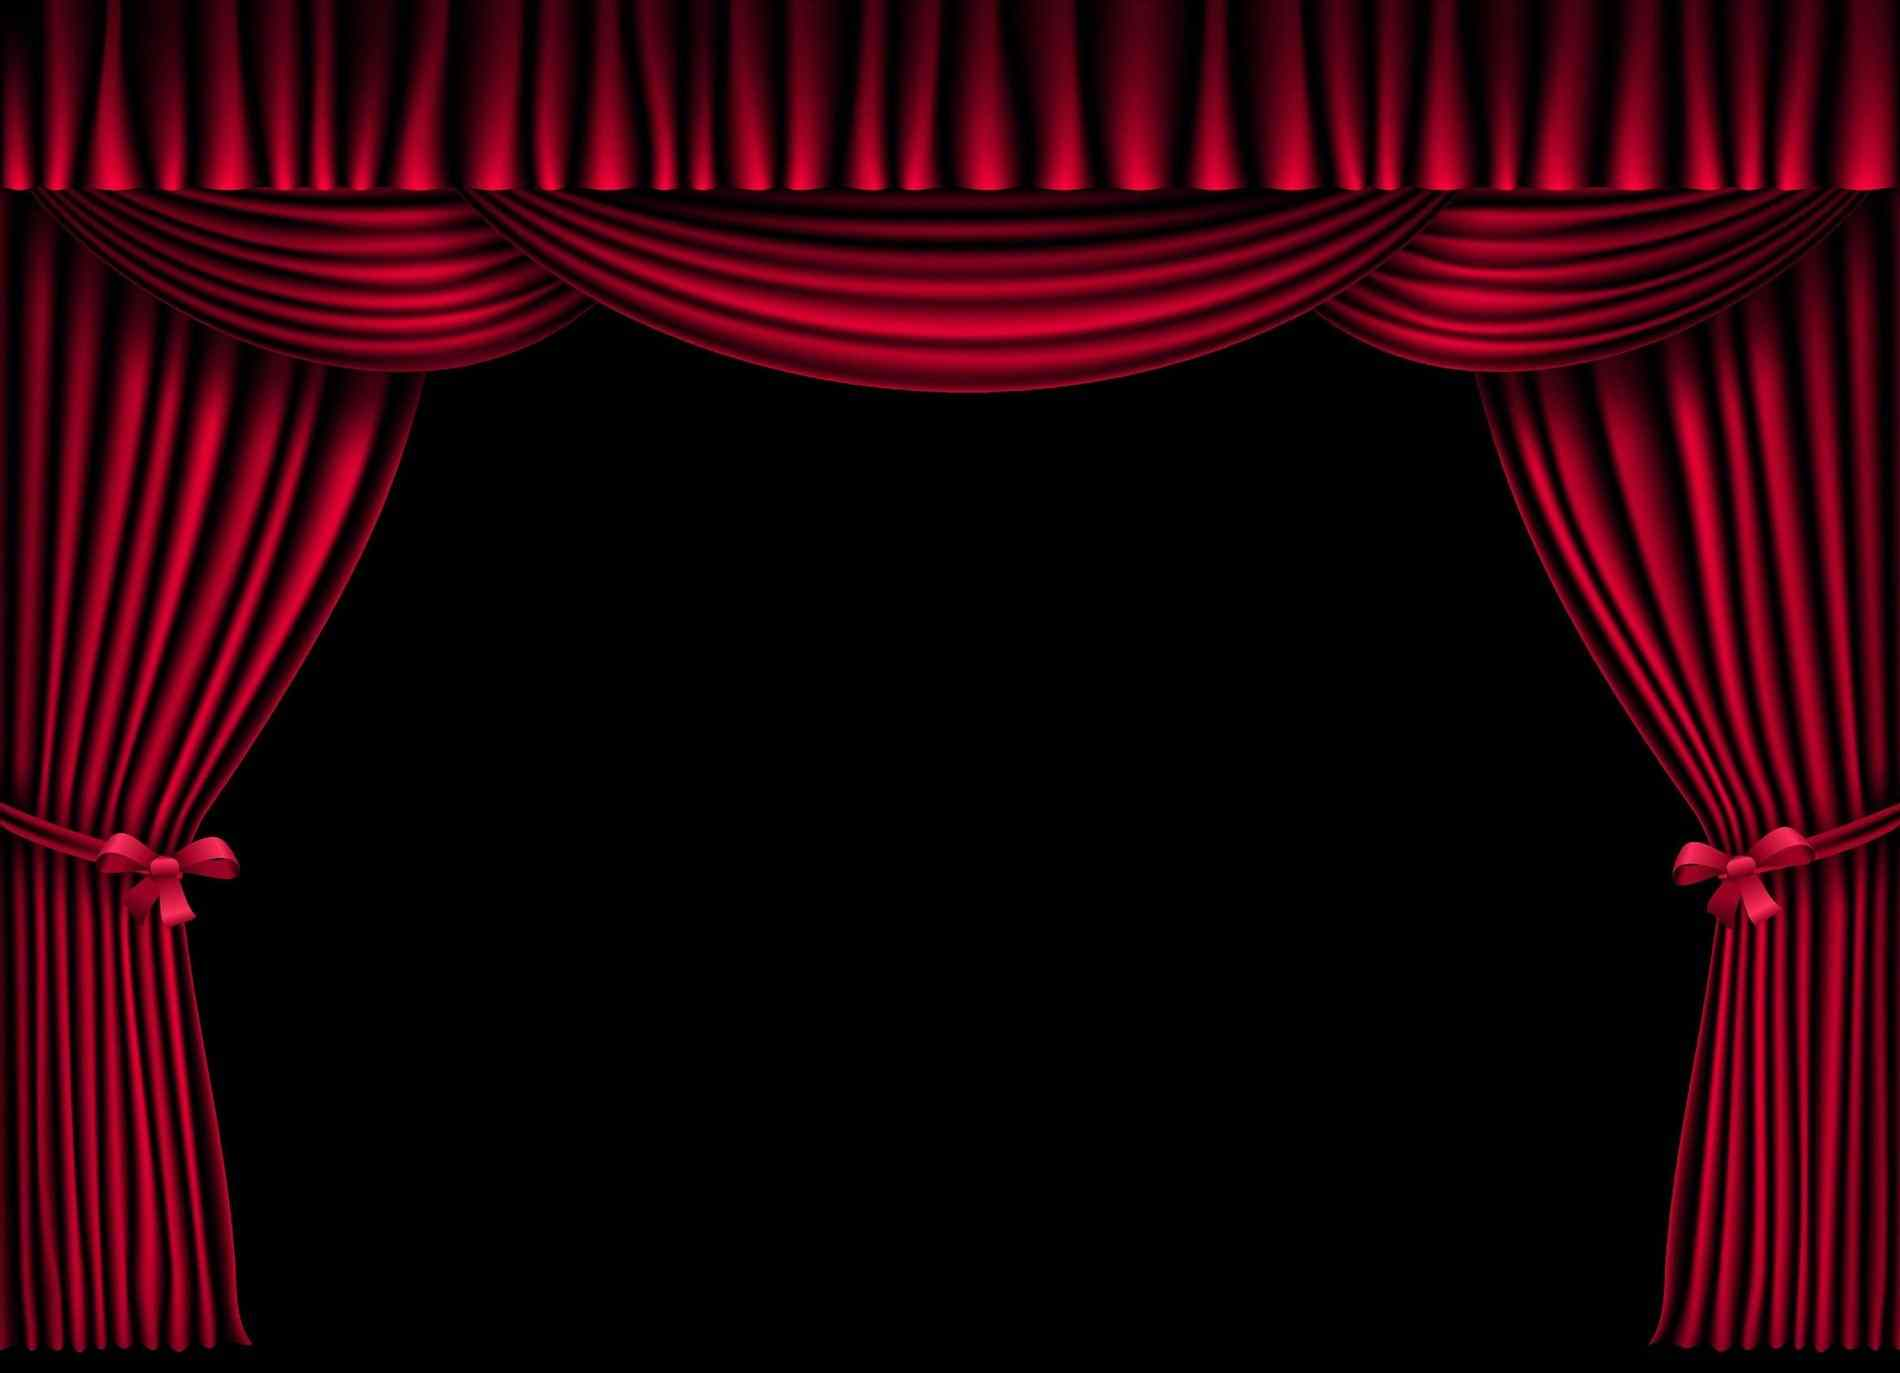 Background clipart stage. Curtains kid theatre curtain